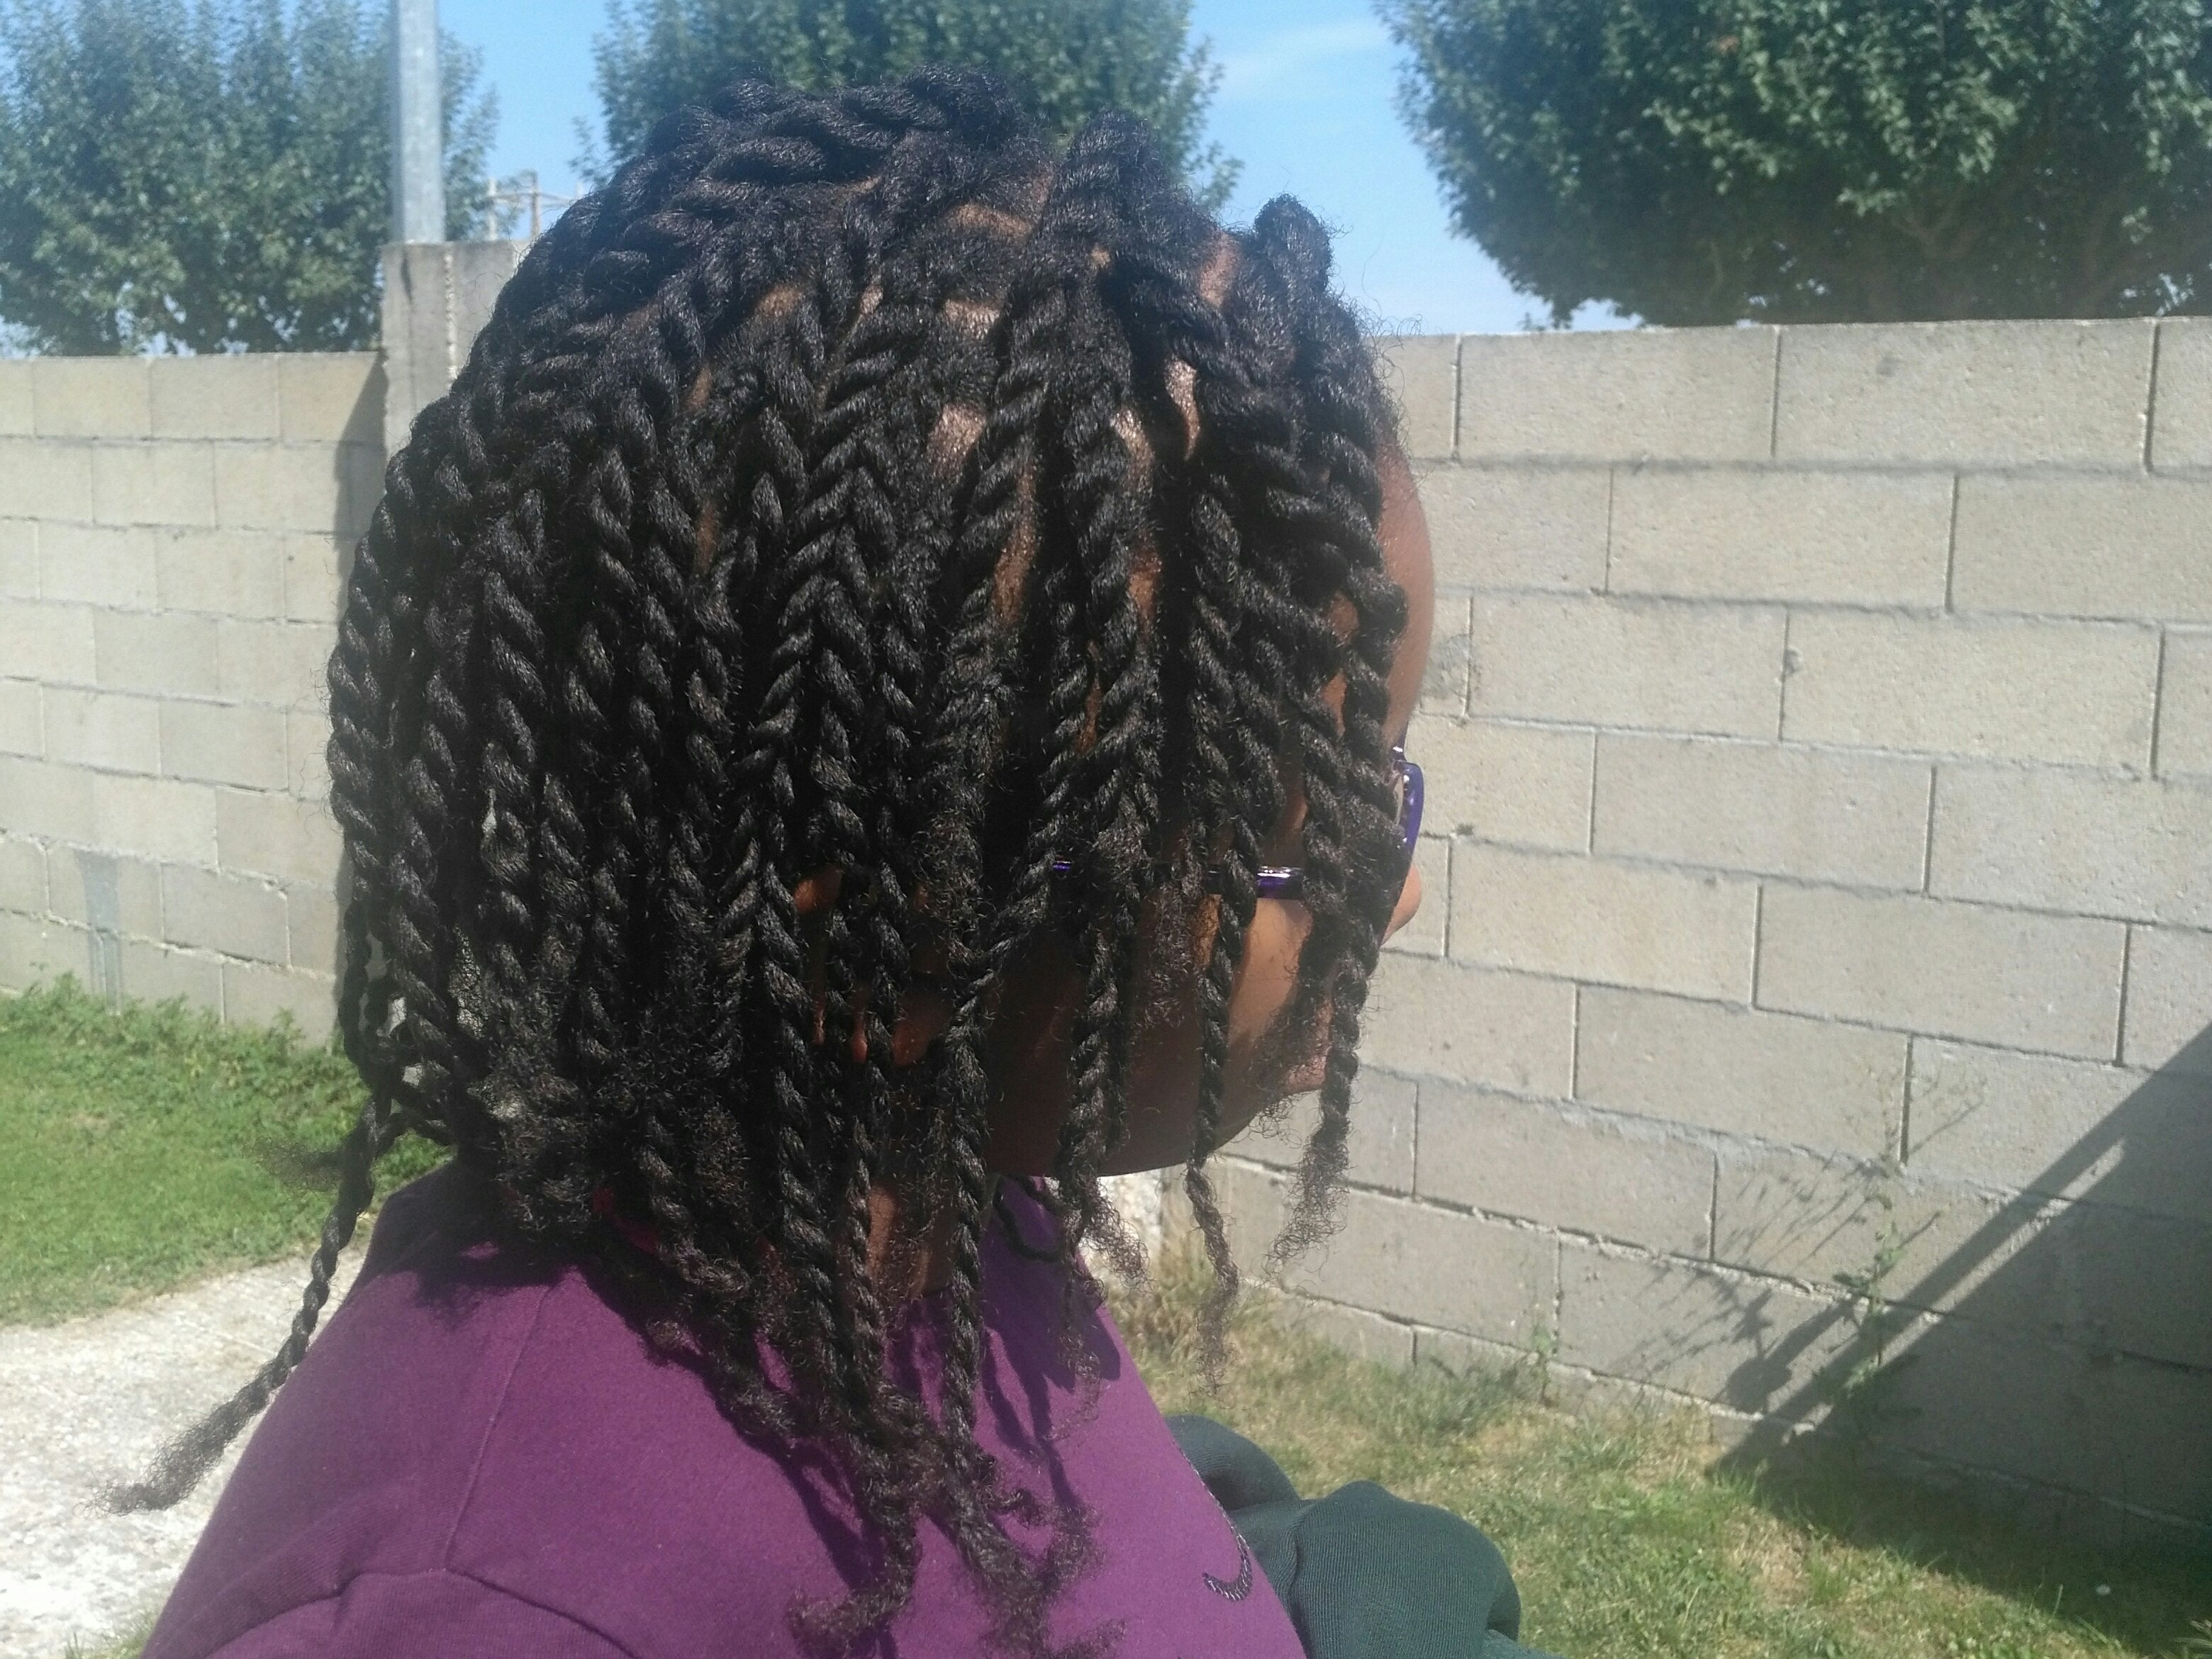 salon de coiffure afro tresse tresses box braids crochet braids vanilles tissages paris 75 77 78 91 92 93 94 95 IXEBJHQM